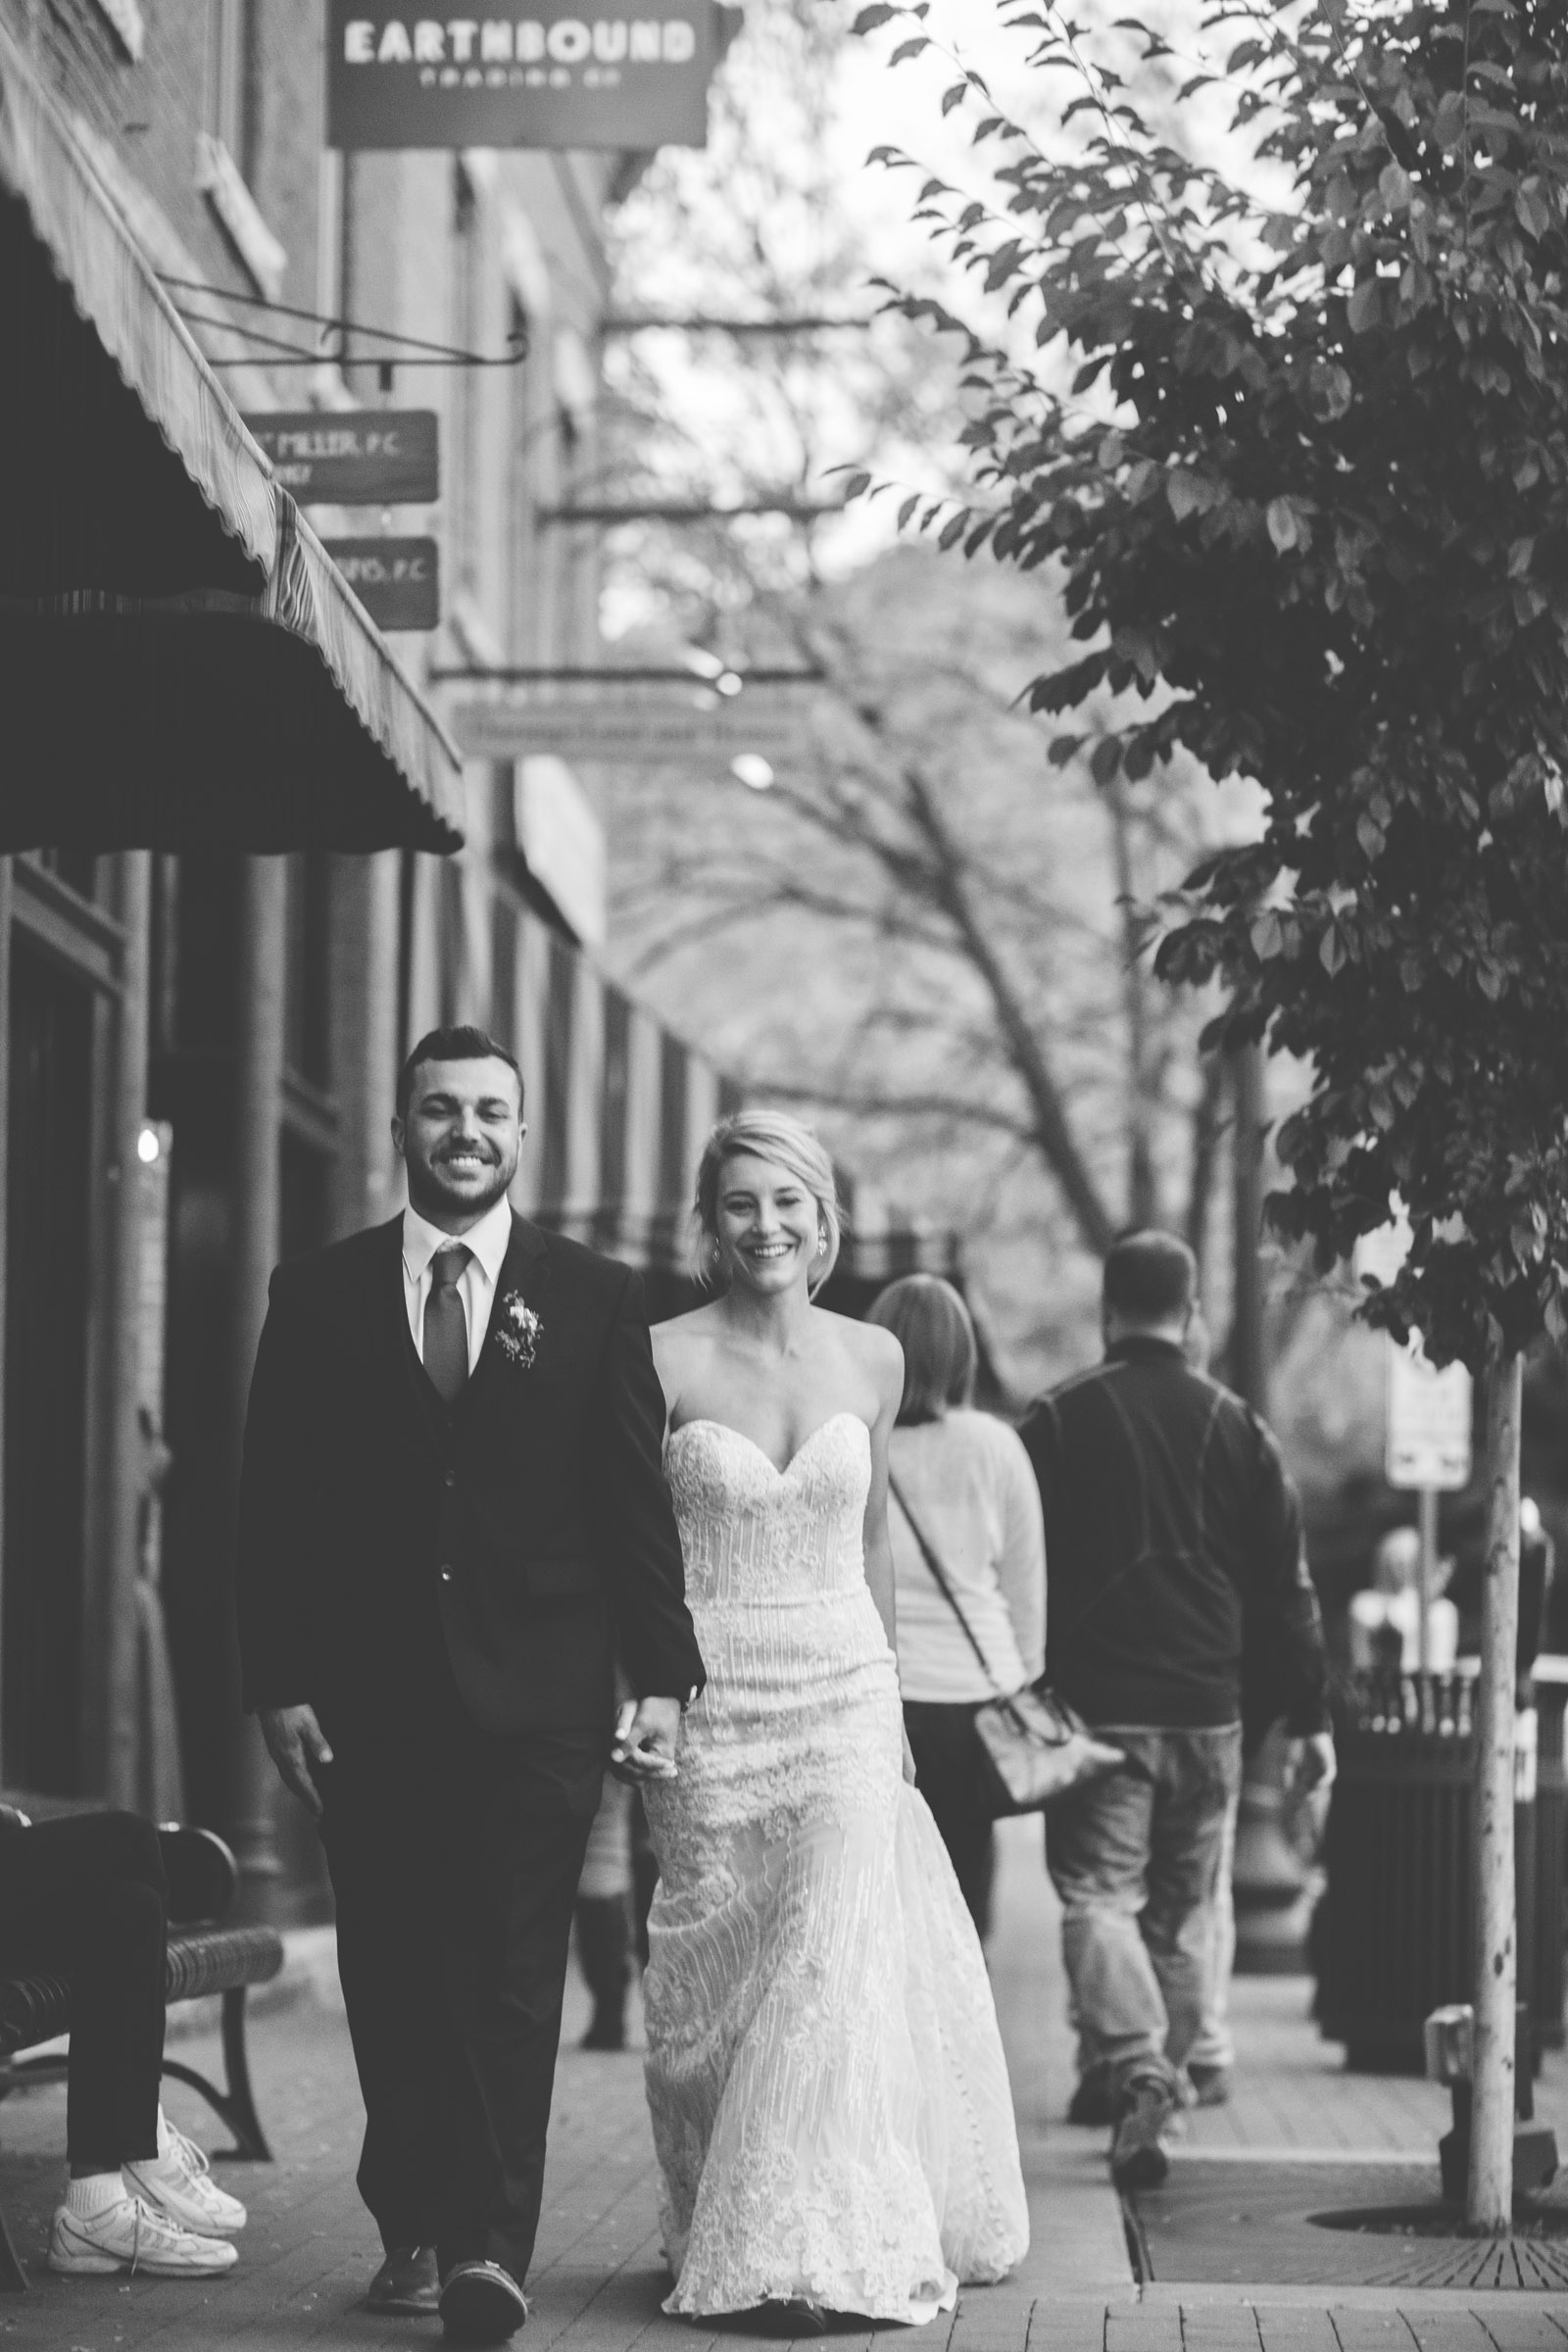 176-beautiful-bride-and-groom-photojournalist-portraits-at-elopement-wedding-in-durango-colorado-downtown